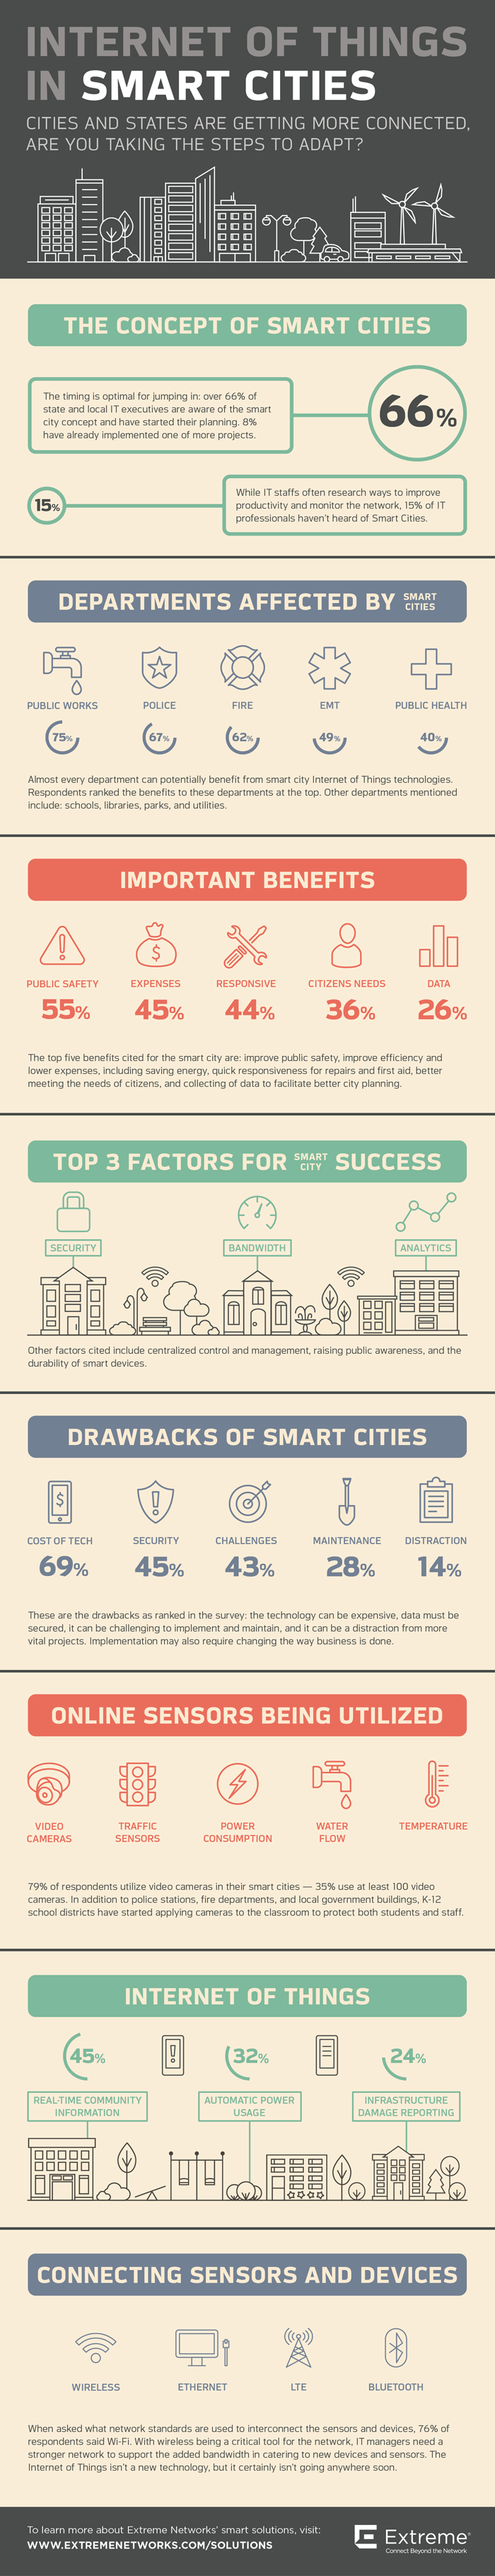 11341-Smart-City-Infographic_v2.png